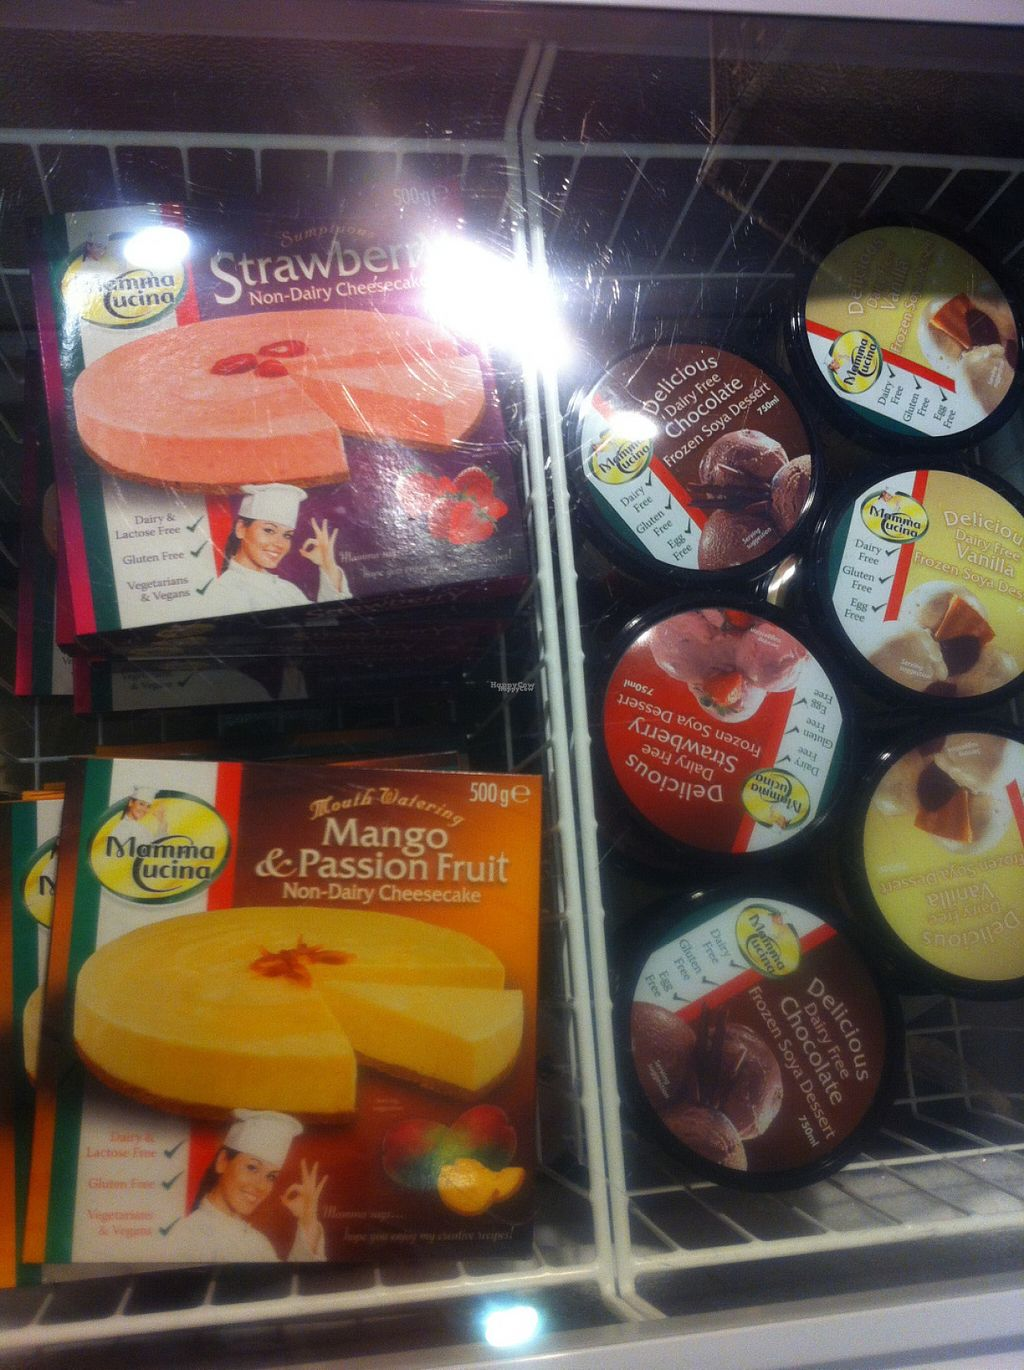 """Photo of Sund Fornuft  by <a href=""""/members/profile/piffelina"""">piffelina</a> <br/>Vegan ice cream and cheese cakes! <br/> August 2, 2016  - <a href='/contact/abuse/image/27853/164704'>Report</a>"""